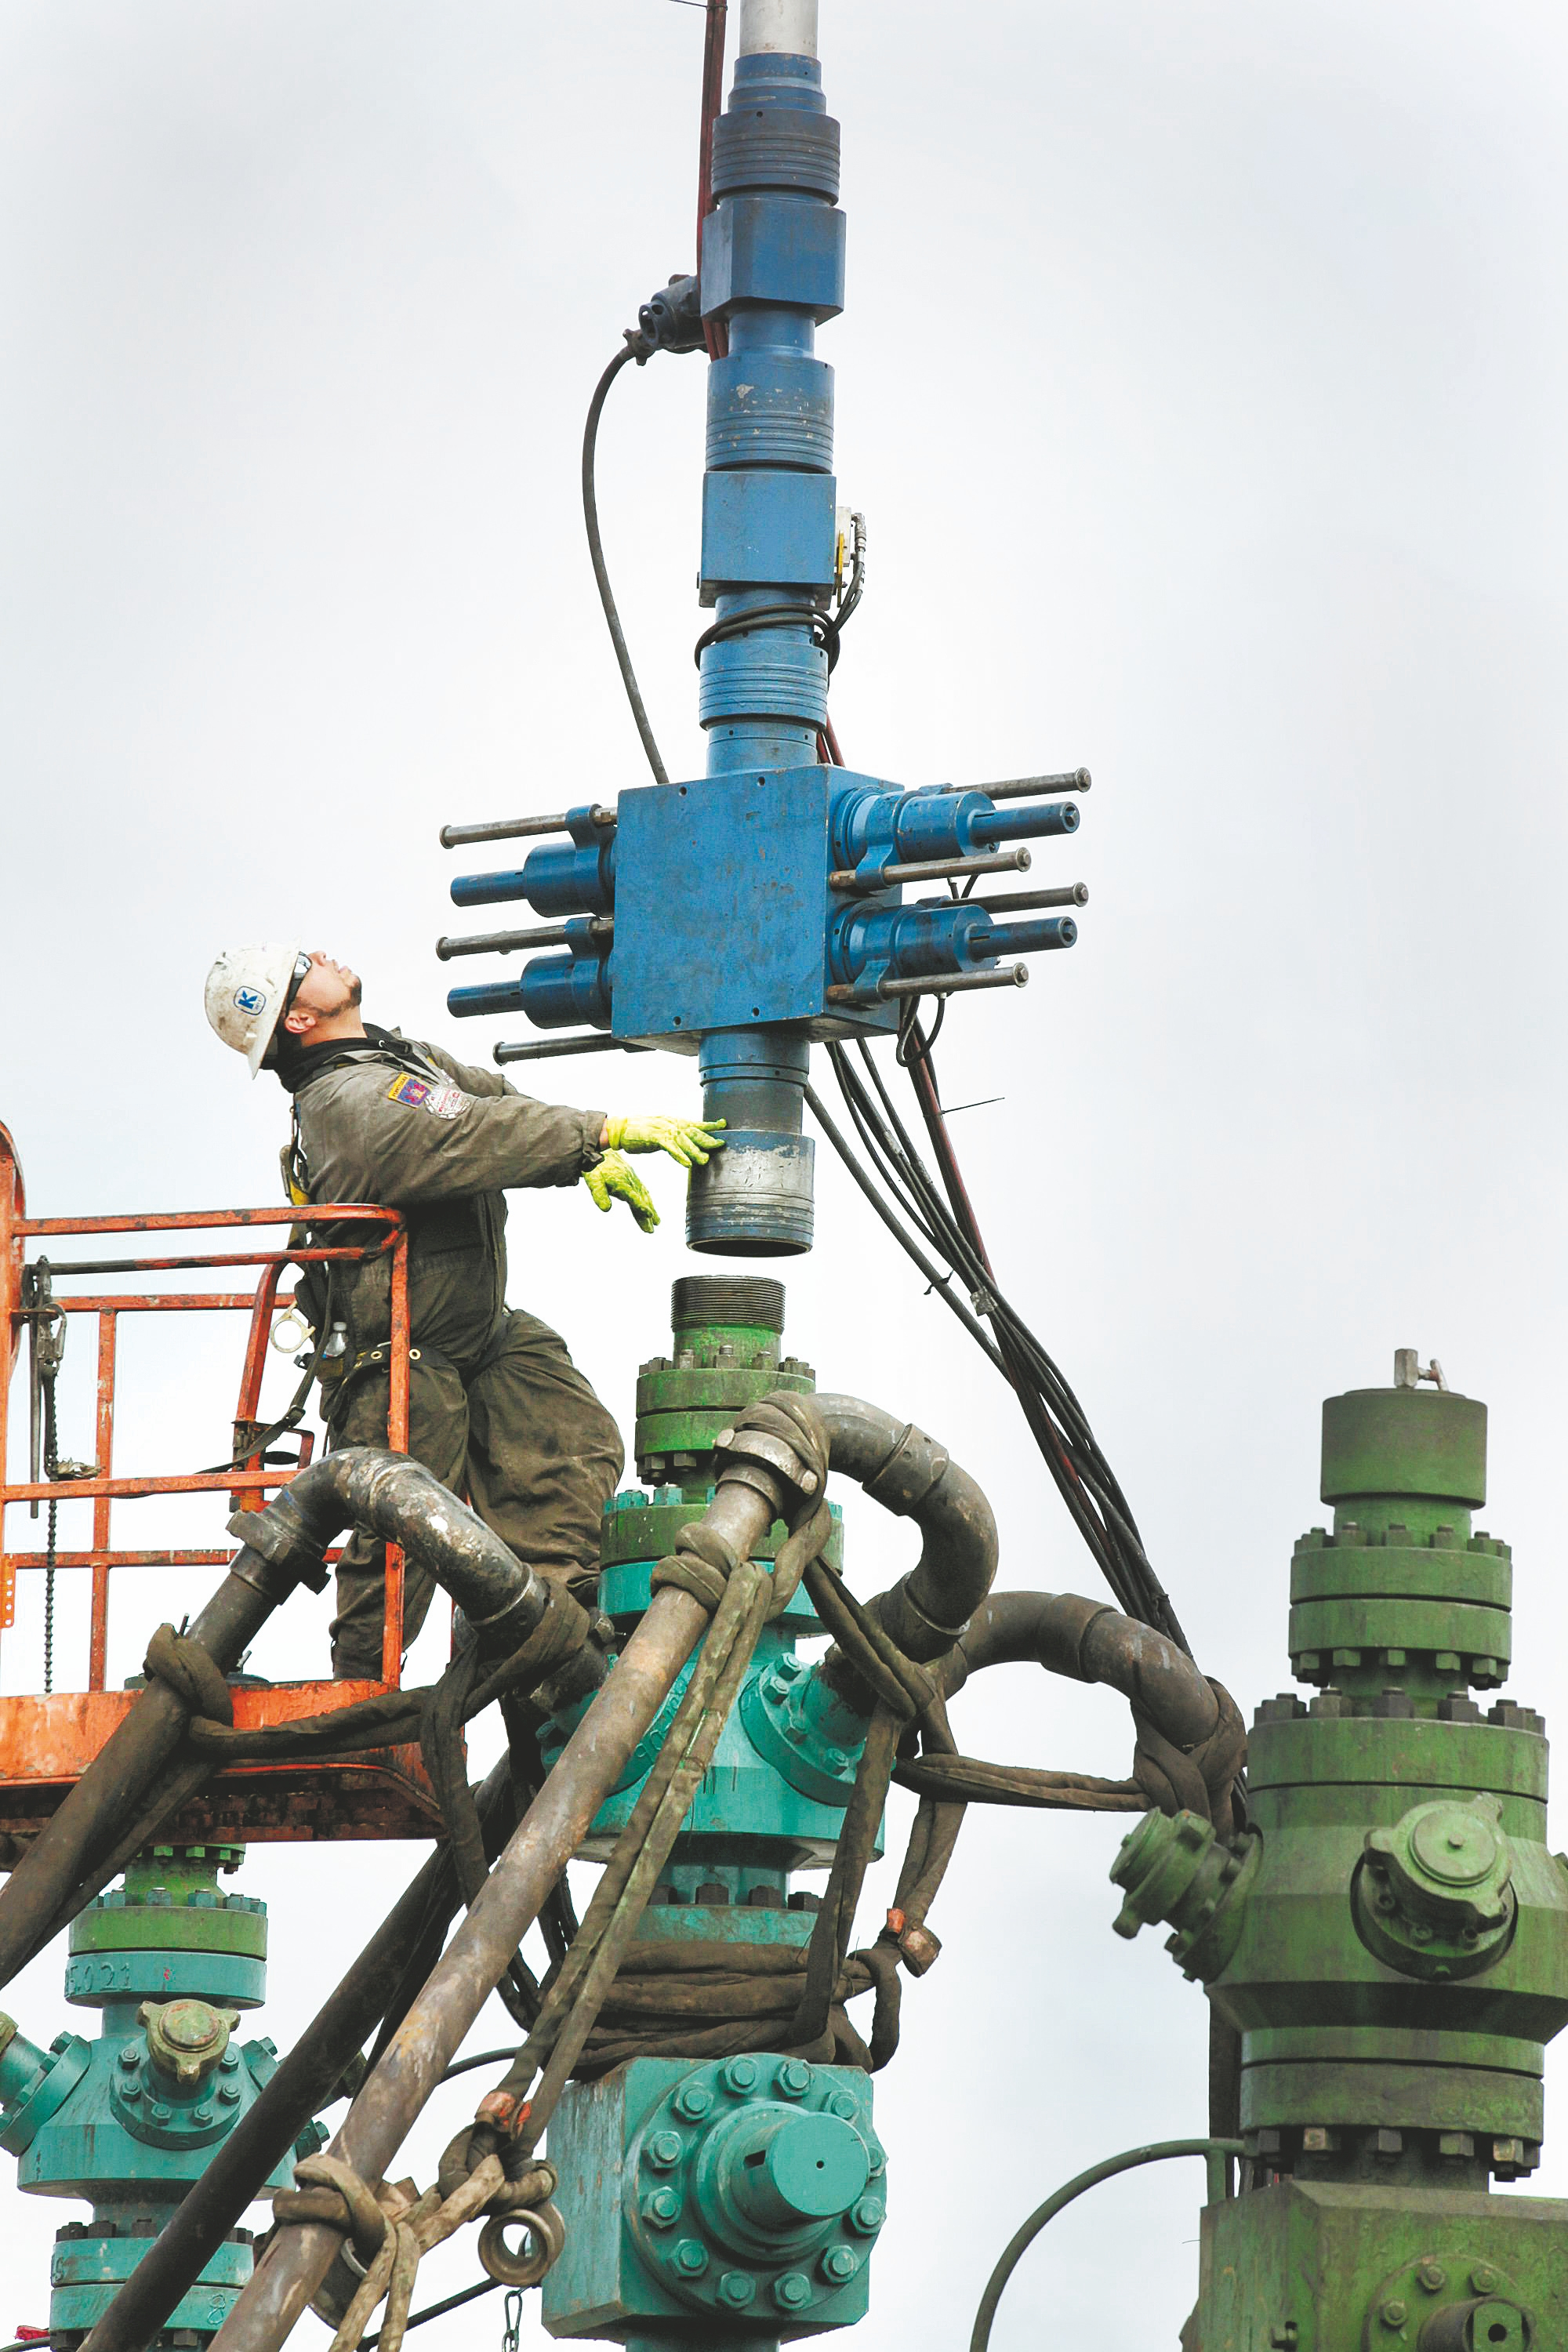 Bloomberg News    A worker cleans and lubricates the head of a hydraulic fracturing machine in Camptown, Pa.